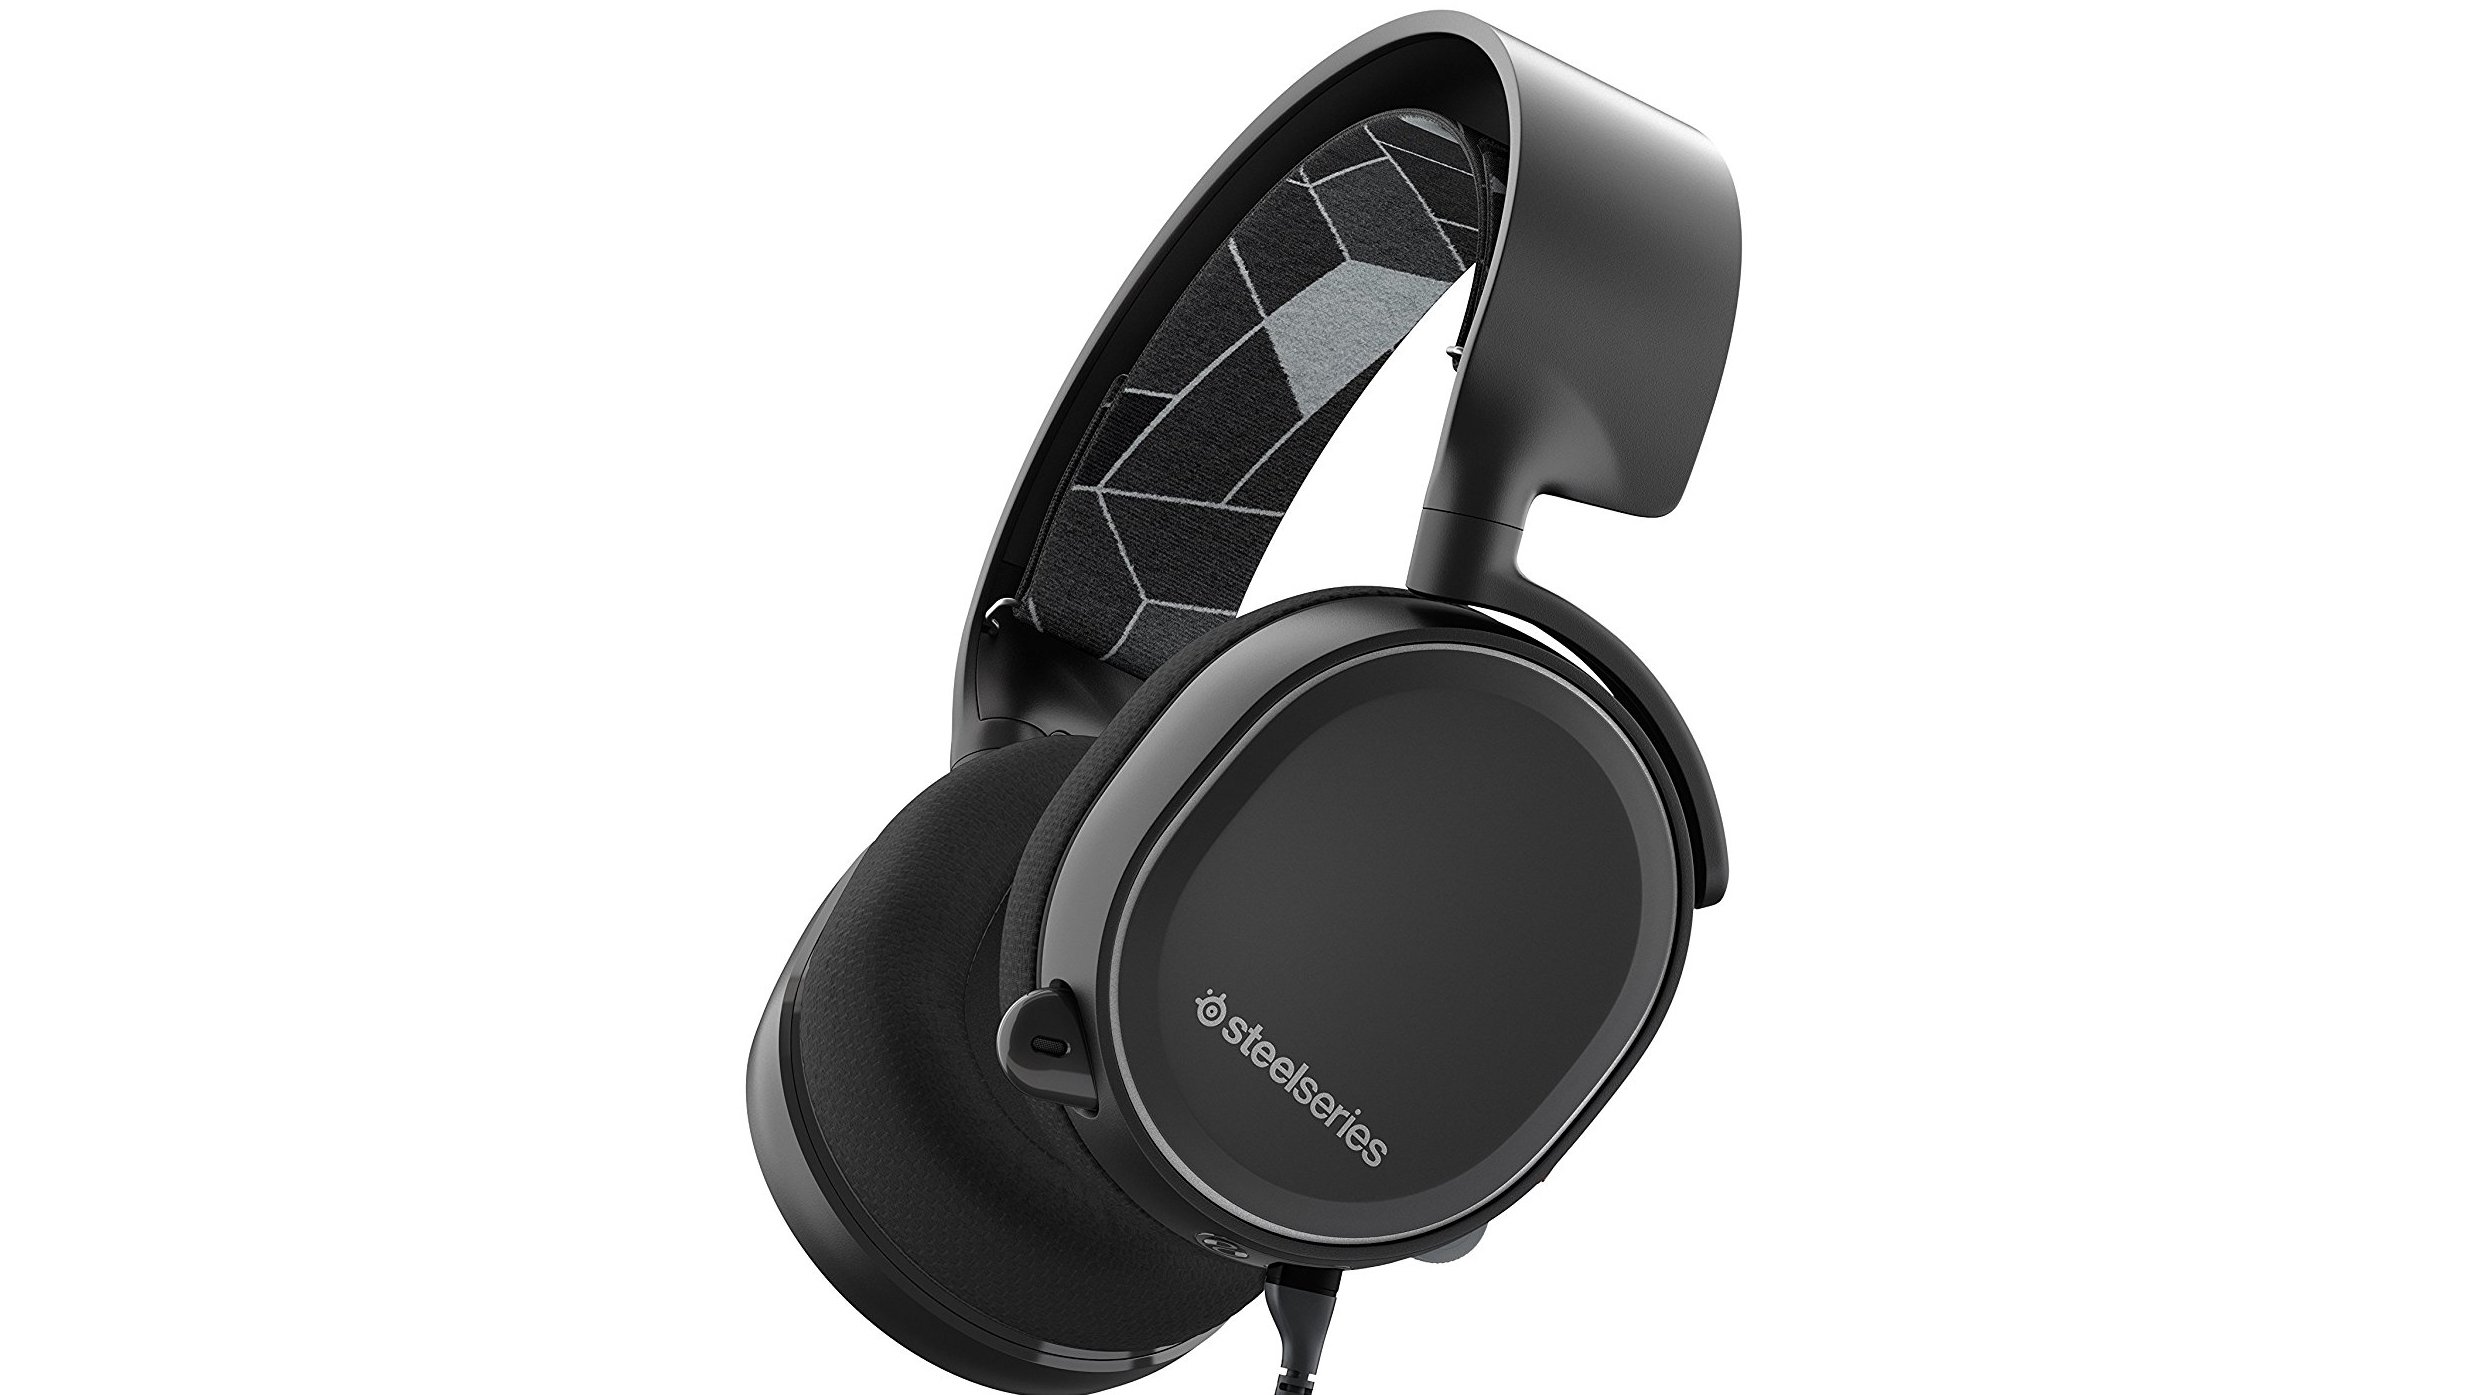 fab04deadf8 Wireless PC gaming headsets and Bluetooth headphones aren't something new,  but the SteelSeries Arctis 3 combines both into one package – allowing you  to ...